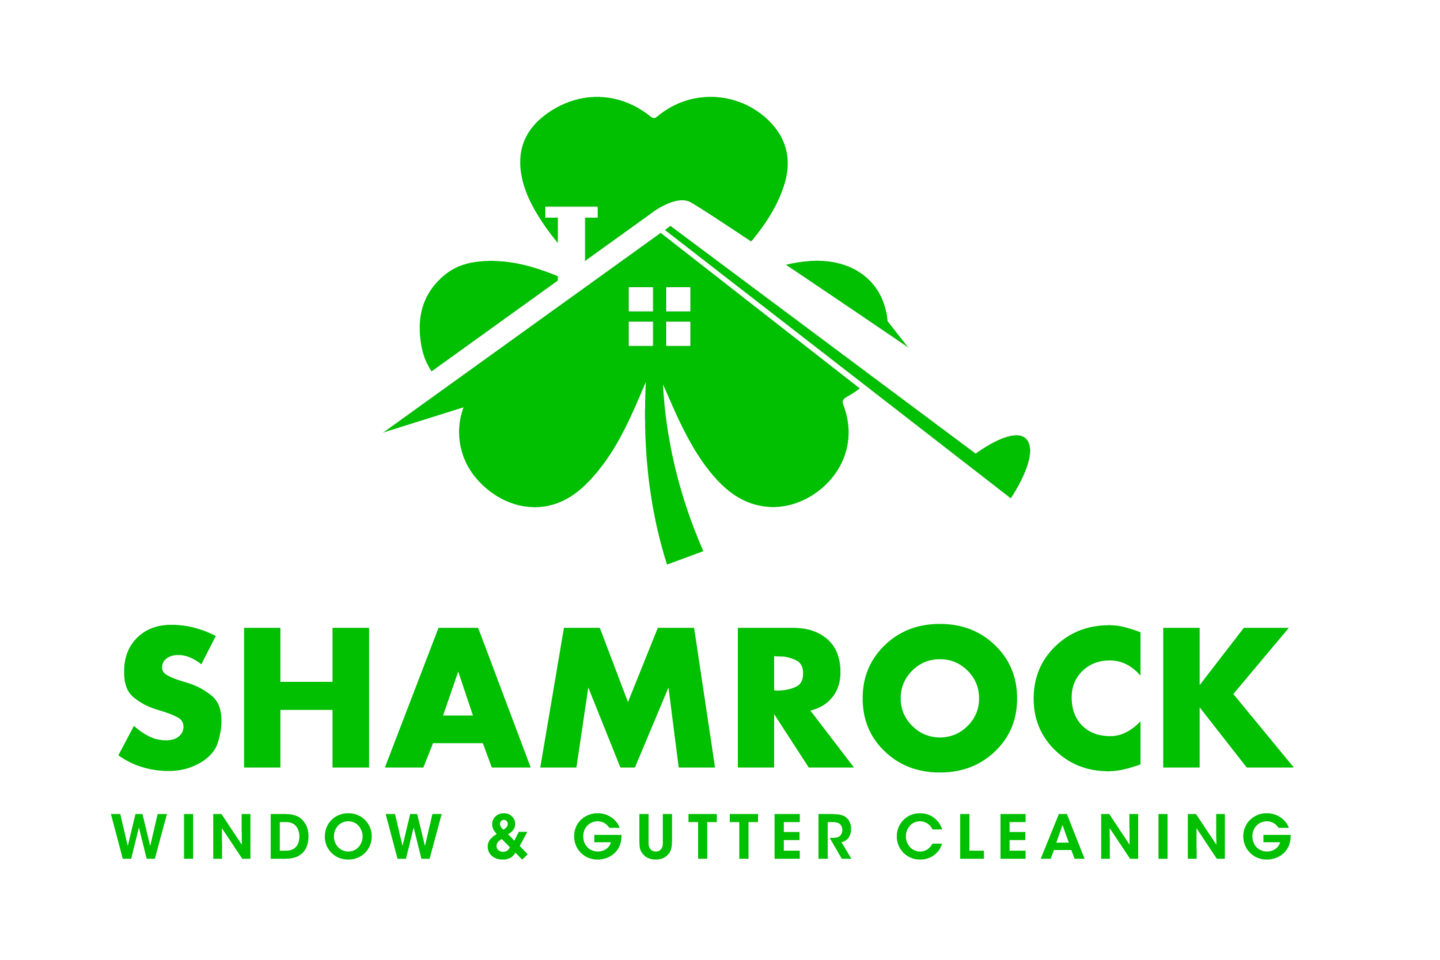 Shamrock Window & Gutter Cleaning